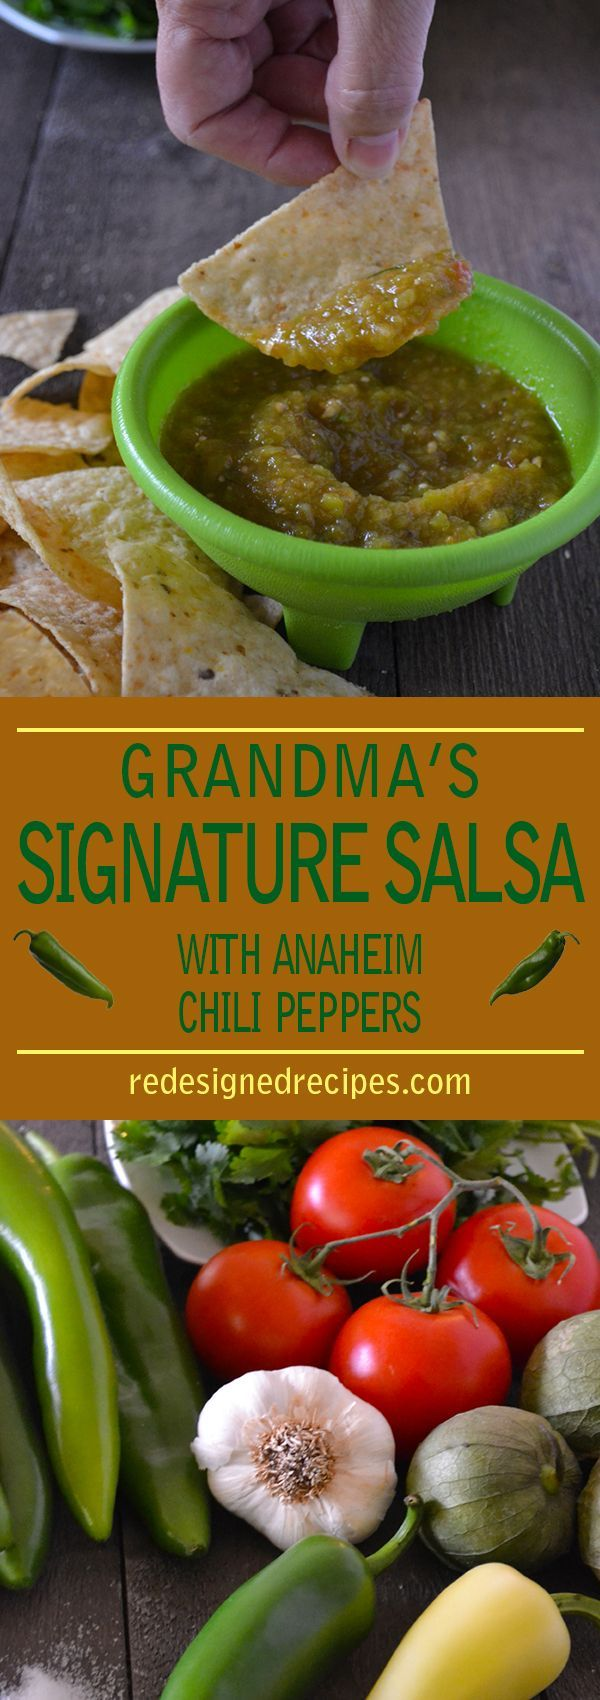 Grandma's Signature Salsa | Made with Anaheim Chili Peppers